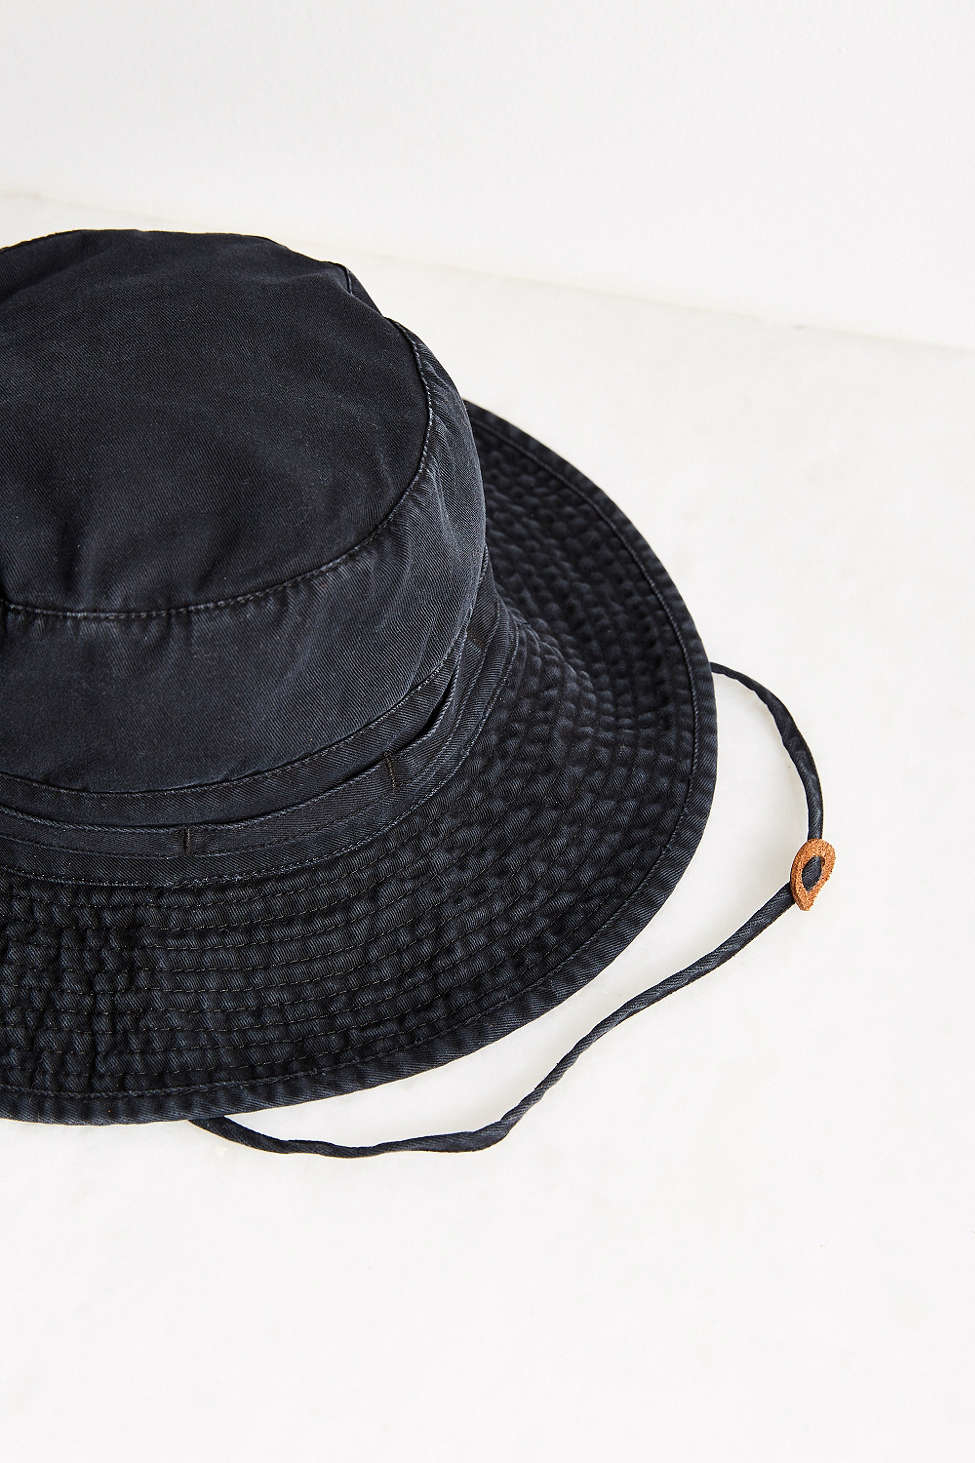 1d6c83d2a03 Lyst - Urban Outfitters Washed Canvas Fishing Bucket Hat in Black